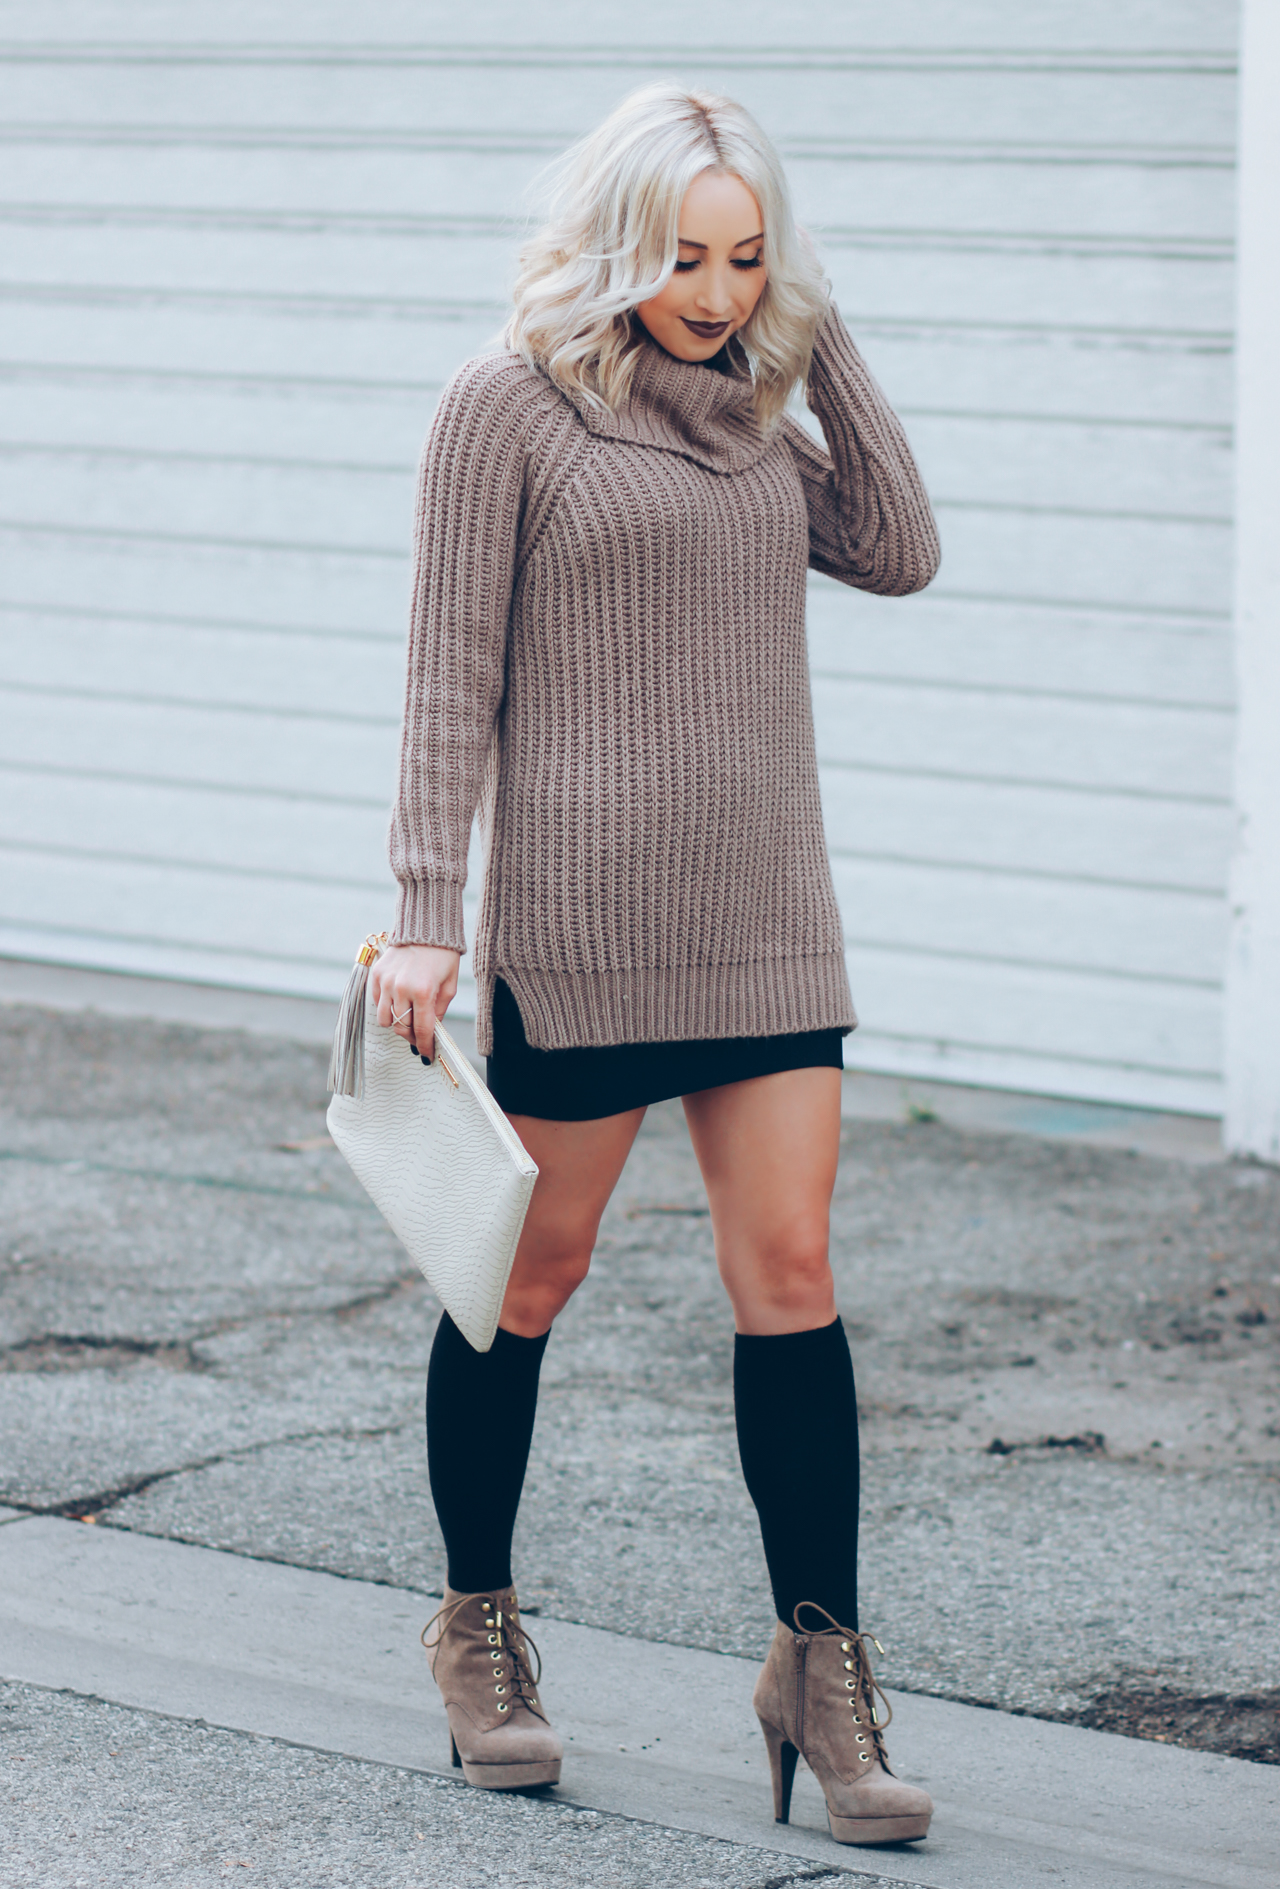 Long Knit Sweater | Knee Highs & Boots | StyledByBlondie.com